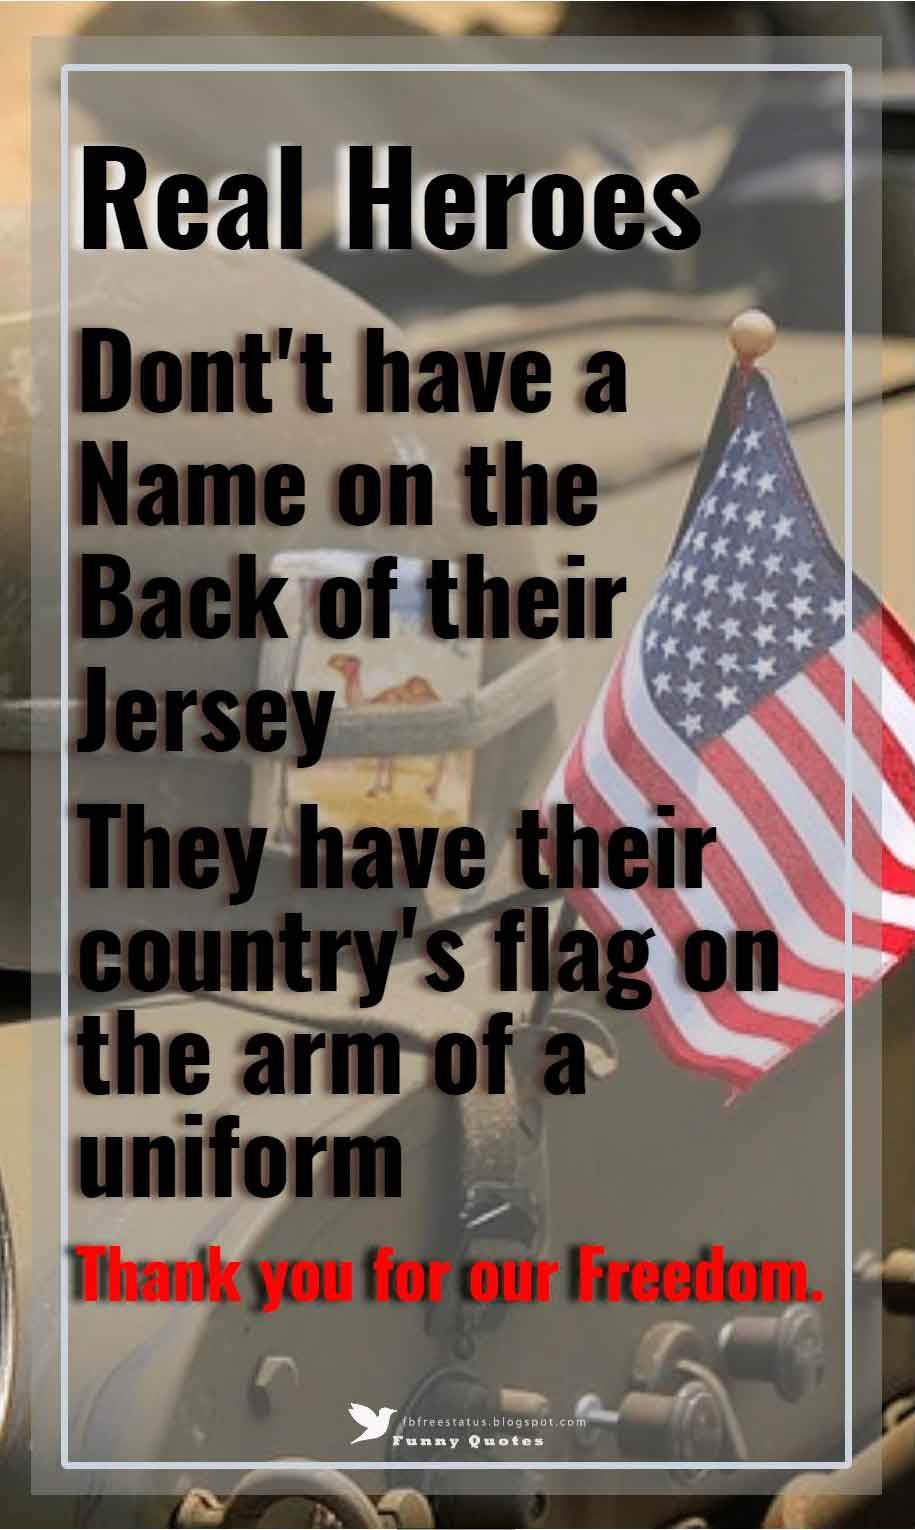 Real heroes dont't have a name on the back of their jersey, they have their country's flag on the arm of a uniform, thank you for our freedom.